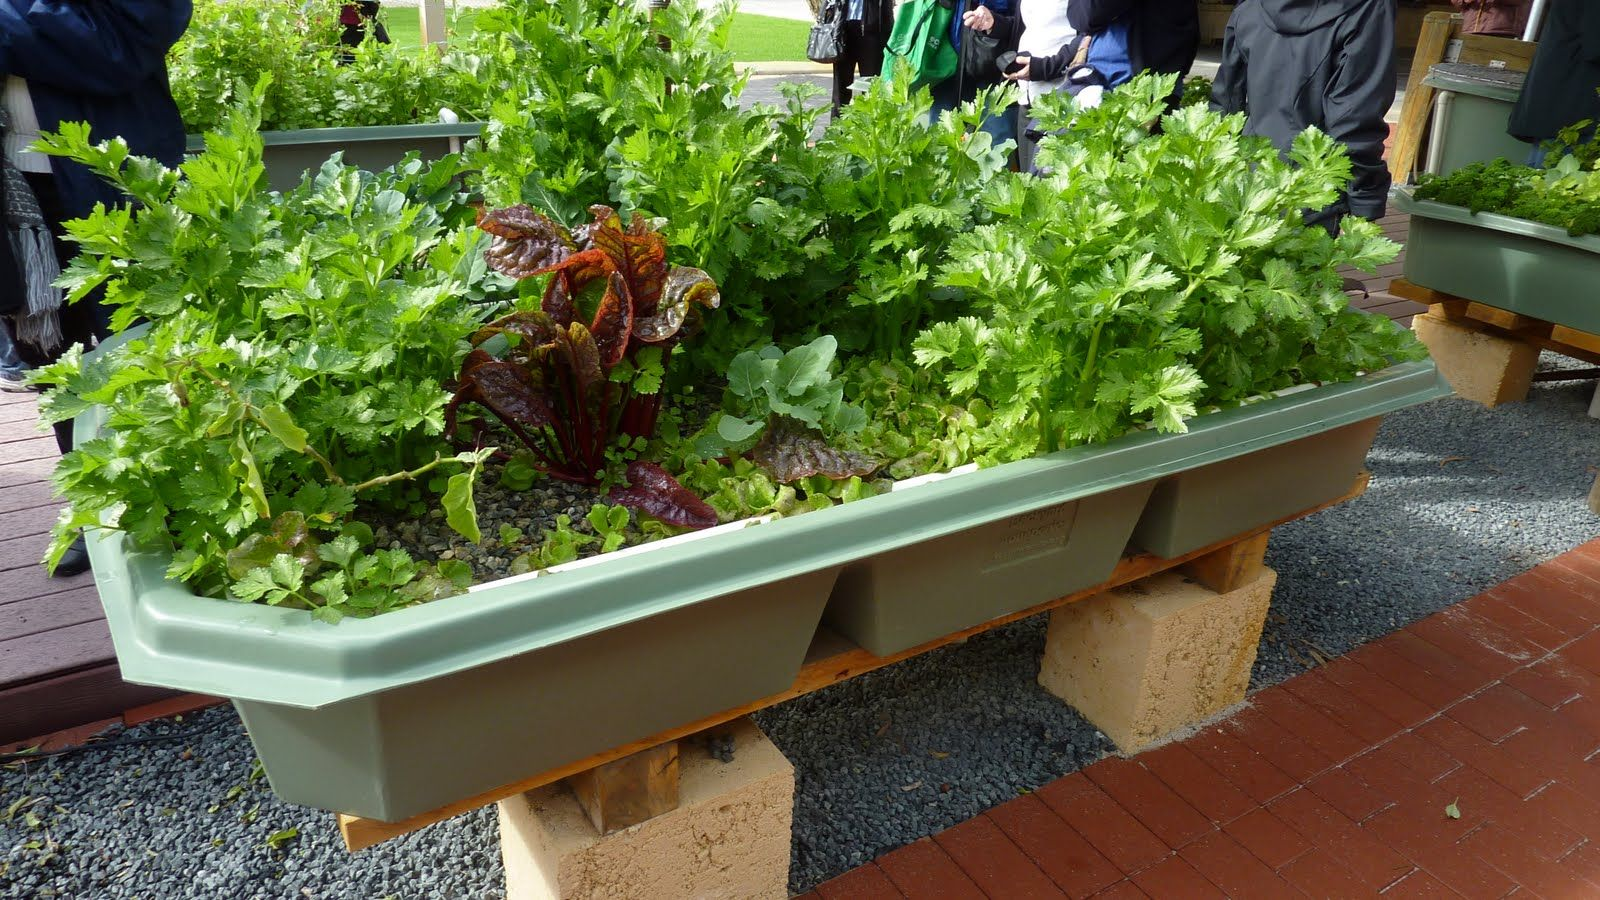 17 Best 1000 images about Aquaponics on Pinterest Gardens Backyards